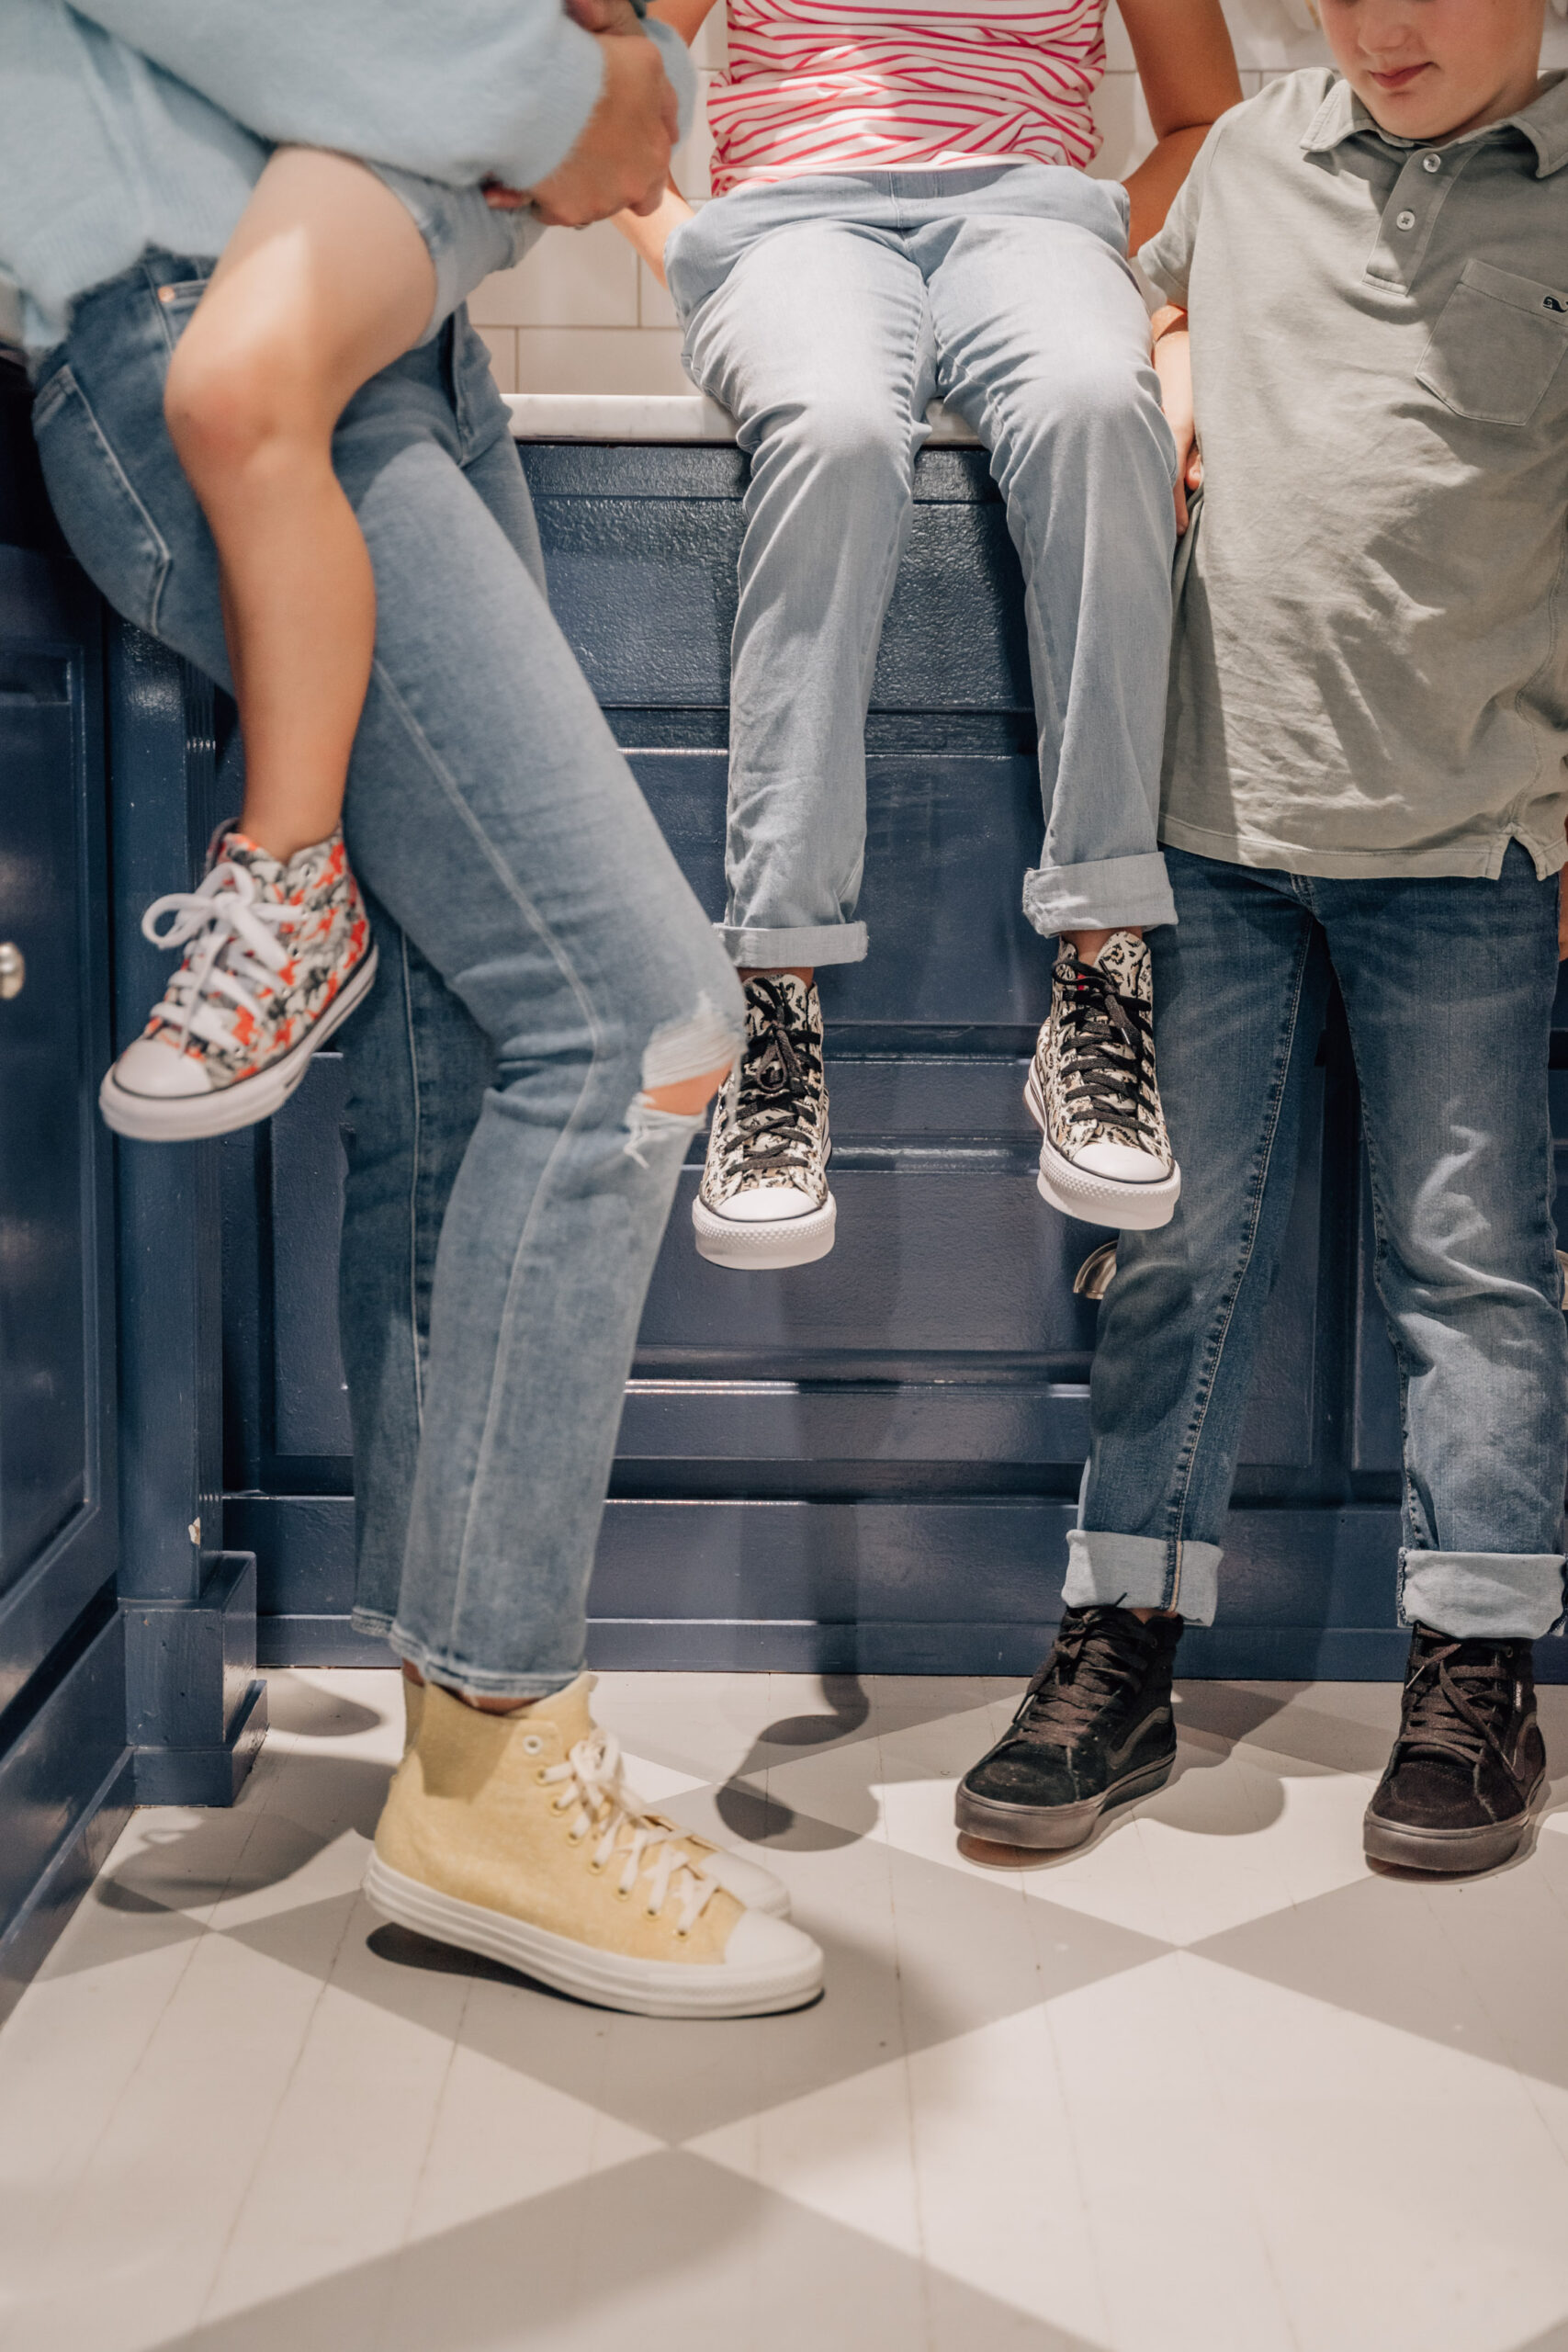 """I guess that it sorta goes without saying then that while gearing up for Back-to-School shopping, high-tops made it to the top of """"The Essentials"""" list."""